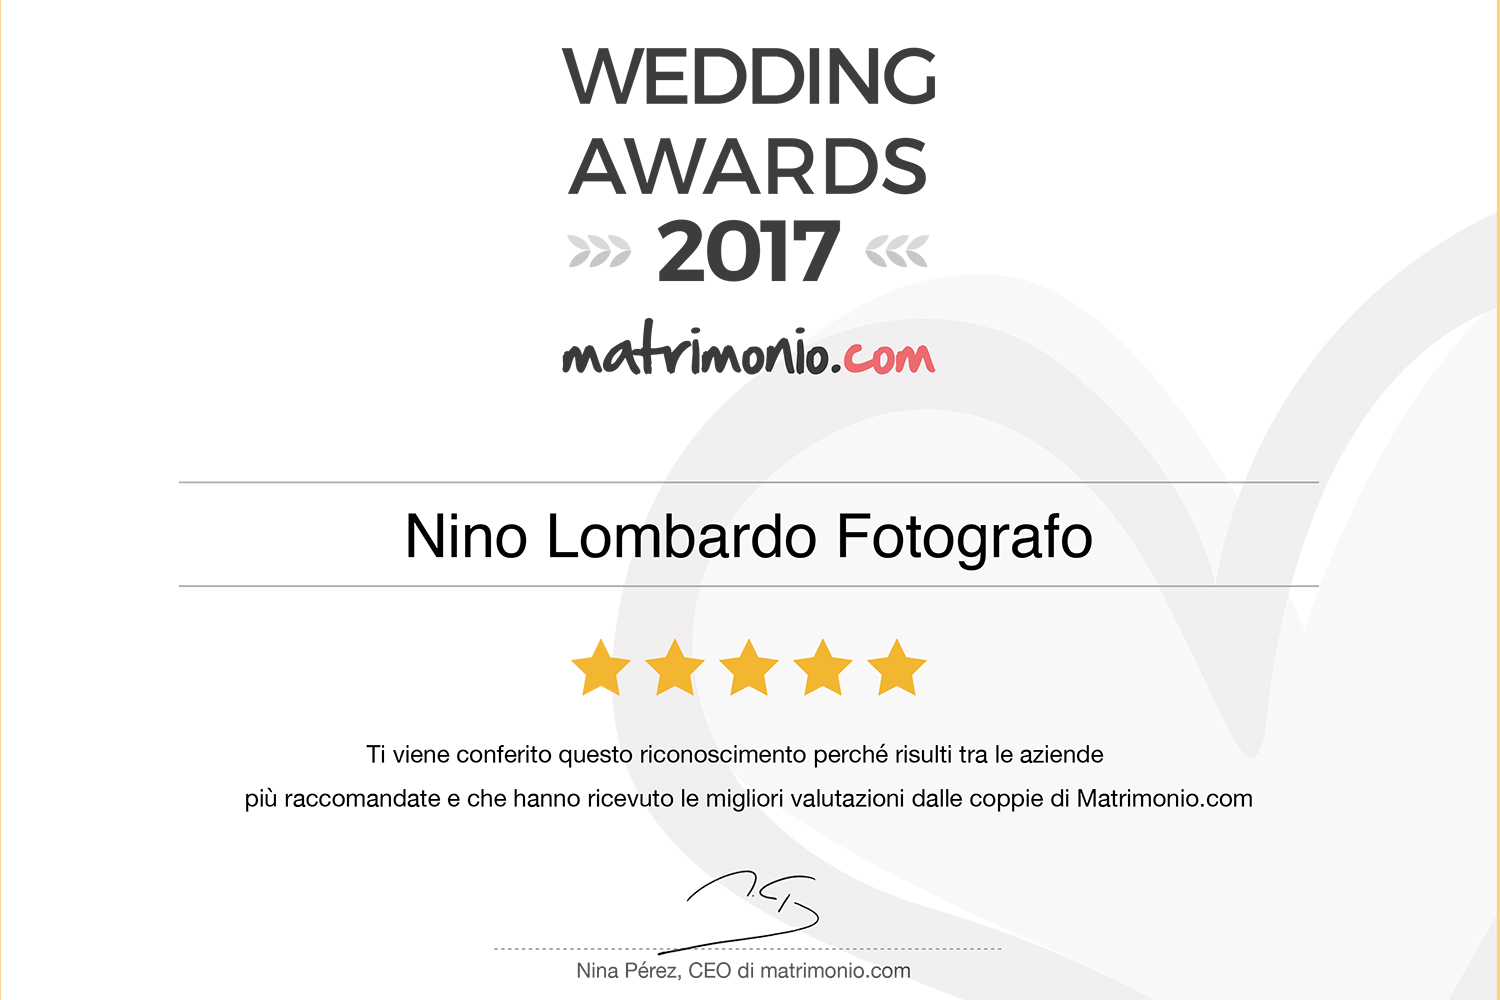 2017 Best Testimonials Wedding Award matrimonio.com Italy Photographer